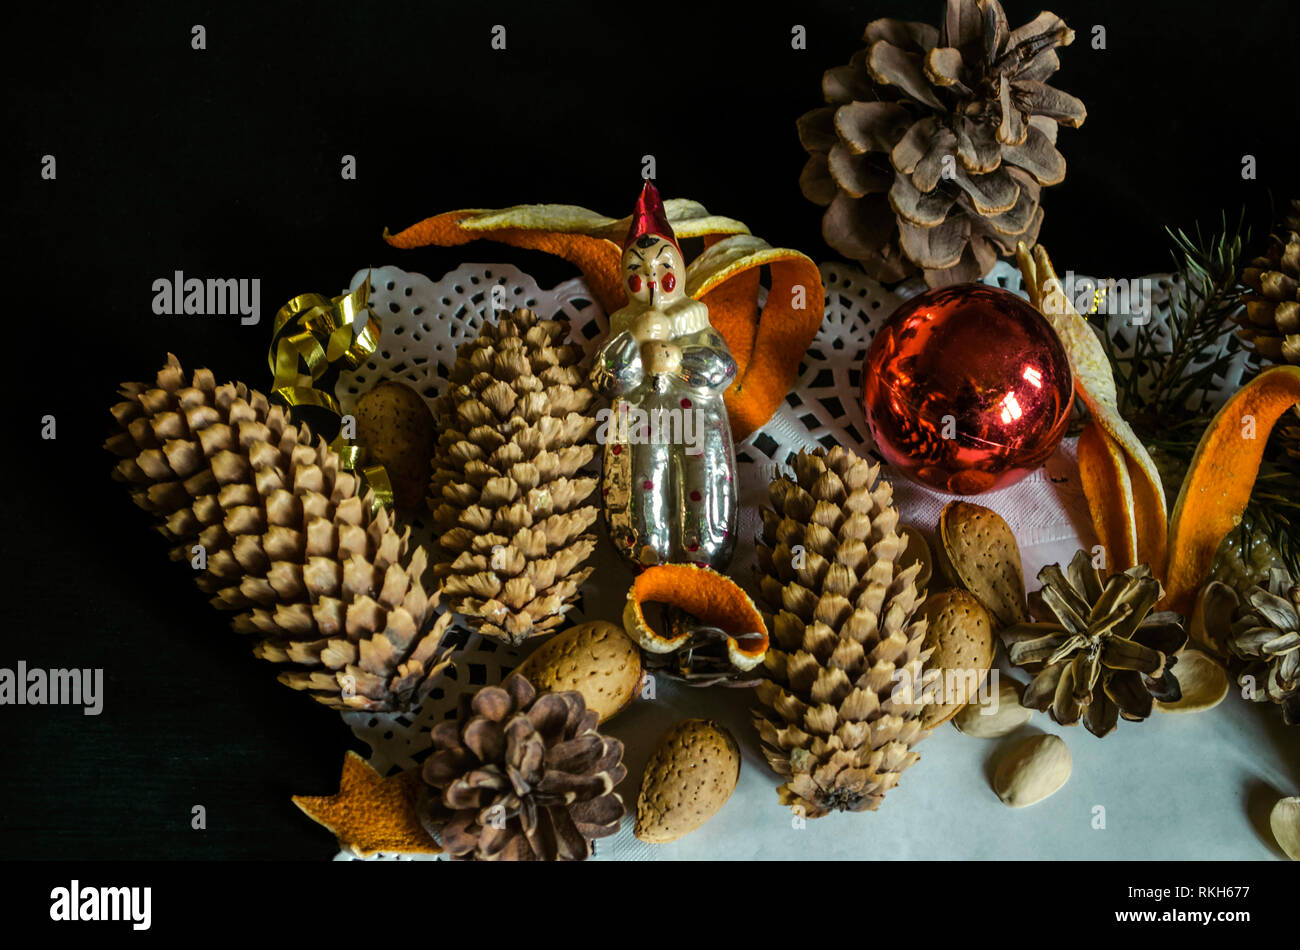 Paper napkin with with various pine cones, fir branch, old worn Christmas toys, almonds and orange peel on a black background Stock Photo